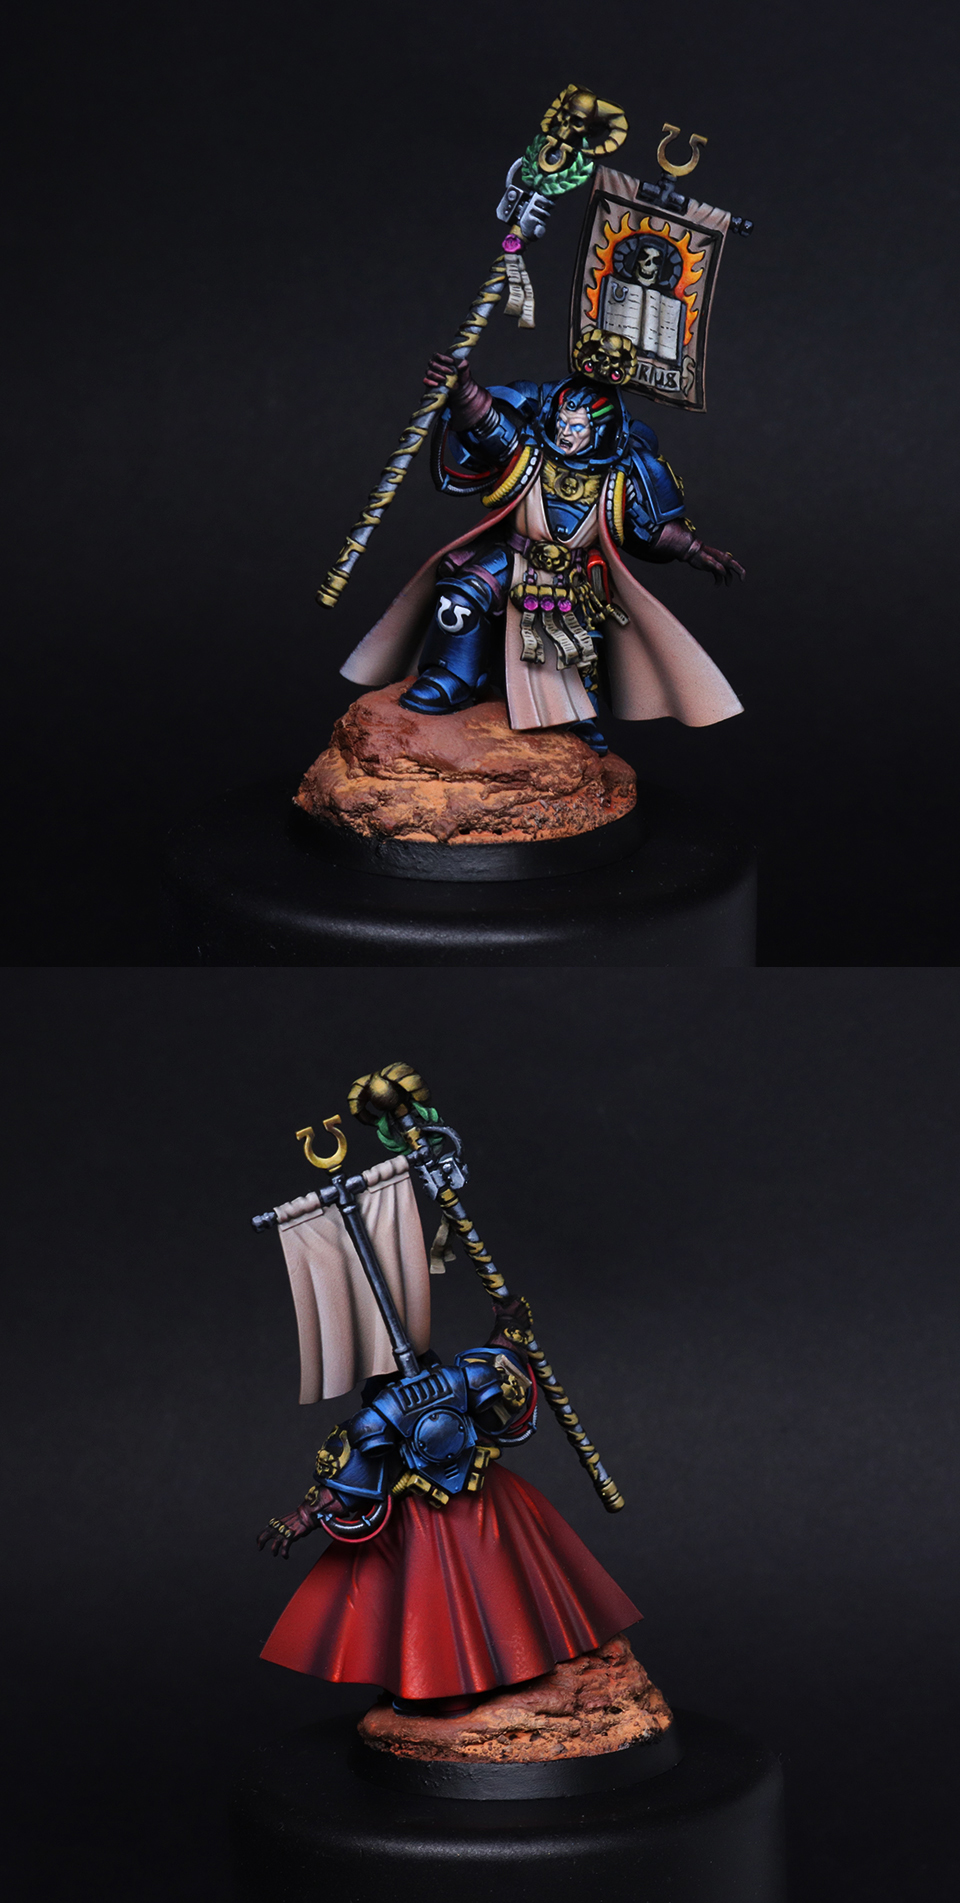 Chief Librarian Tigurius of the Ultramarines Chapter